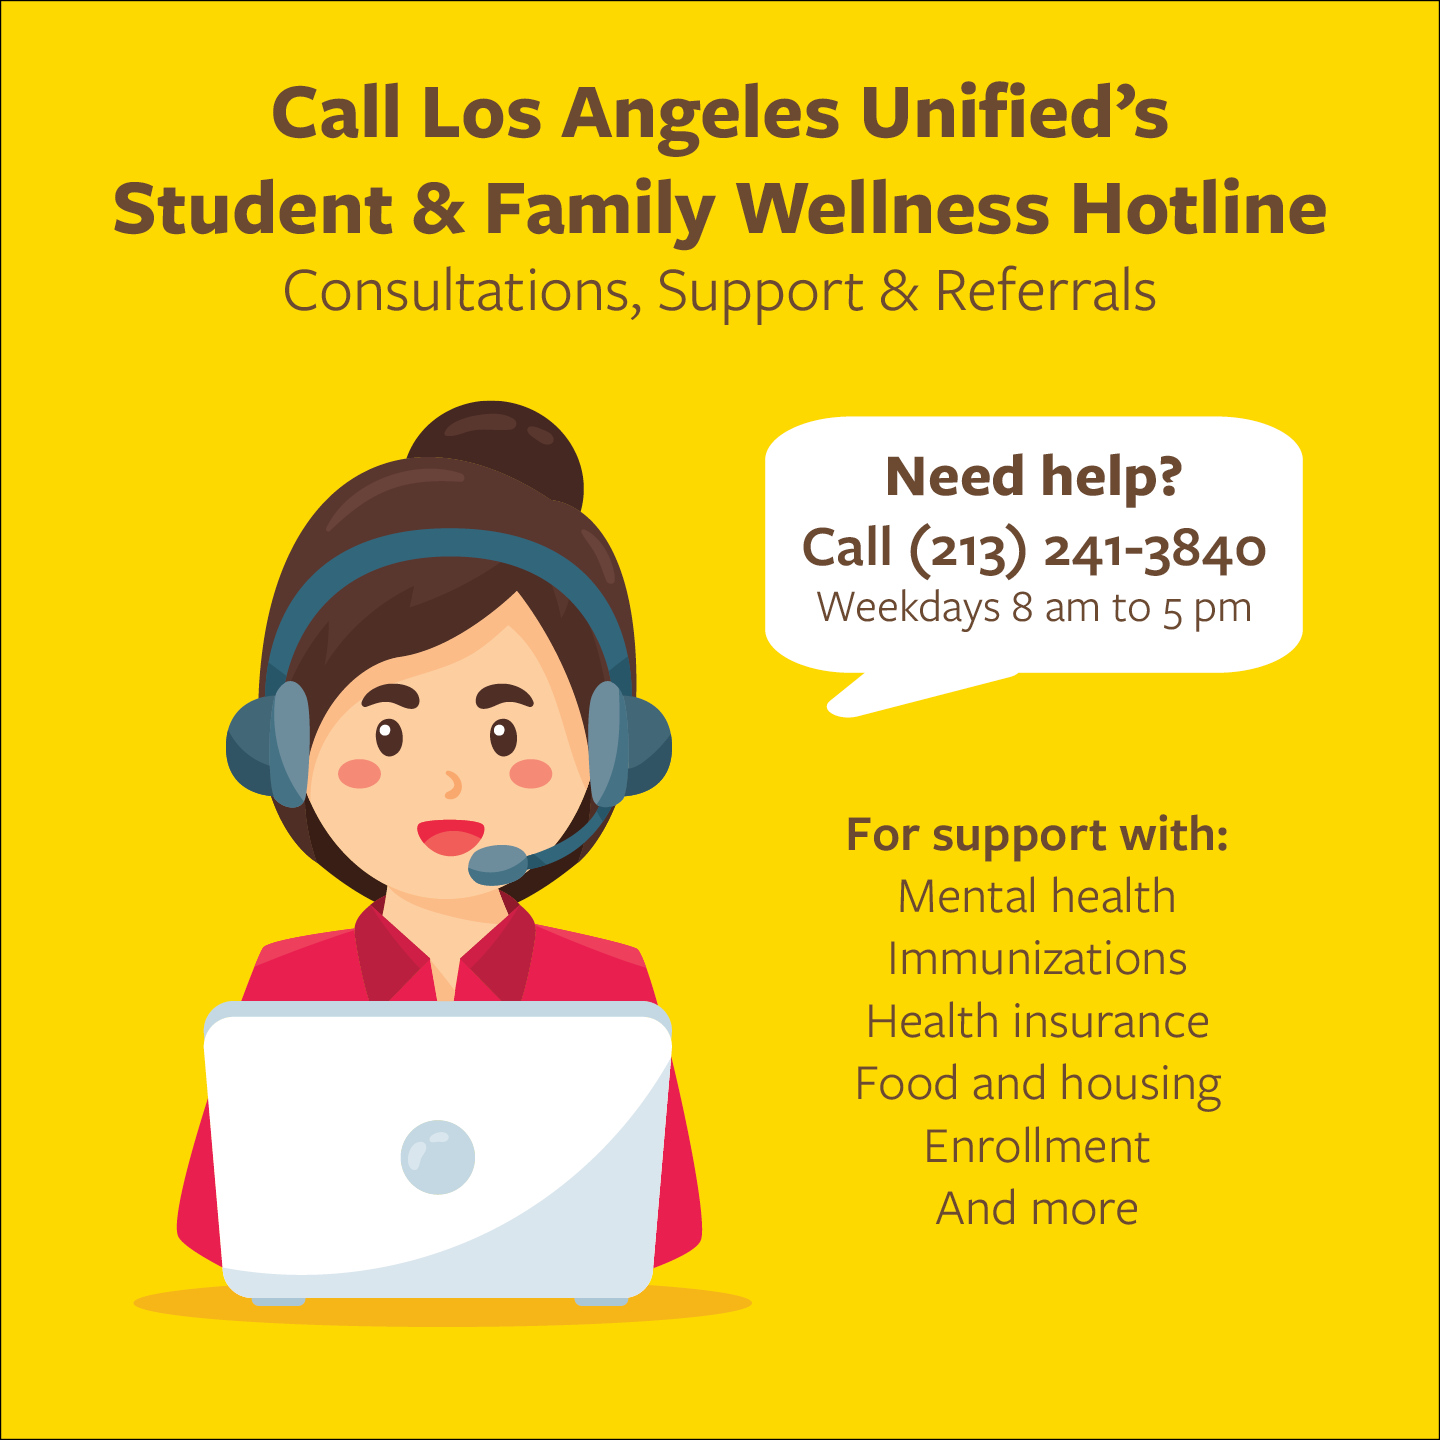 LAUSD Wellness Hotline English 12.17.2020.png